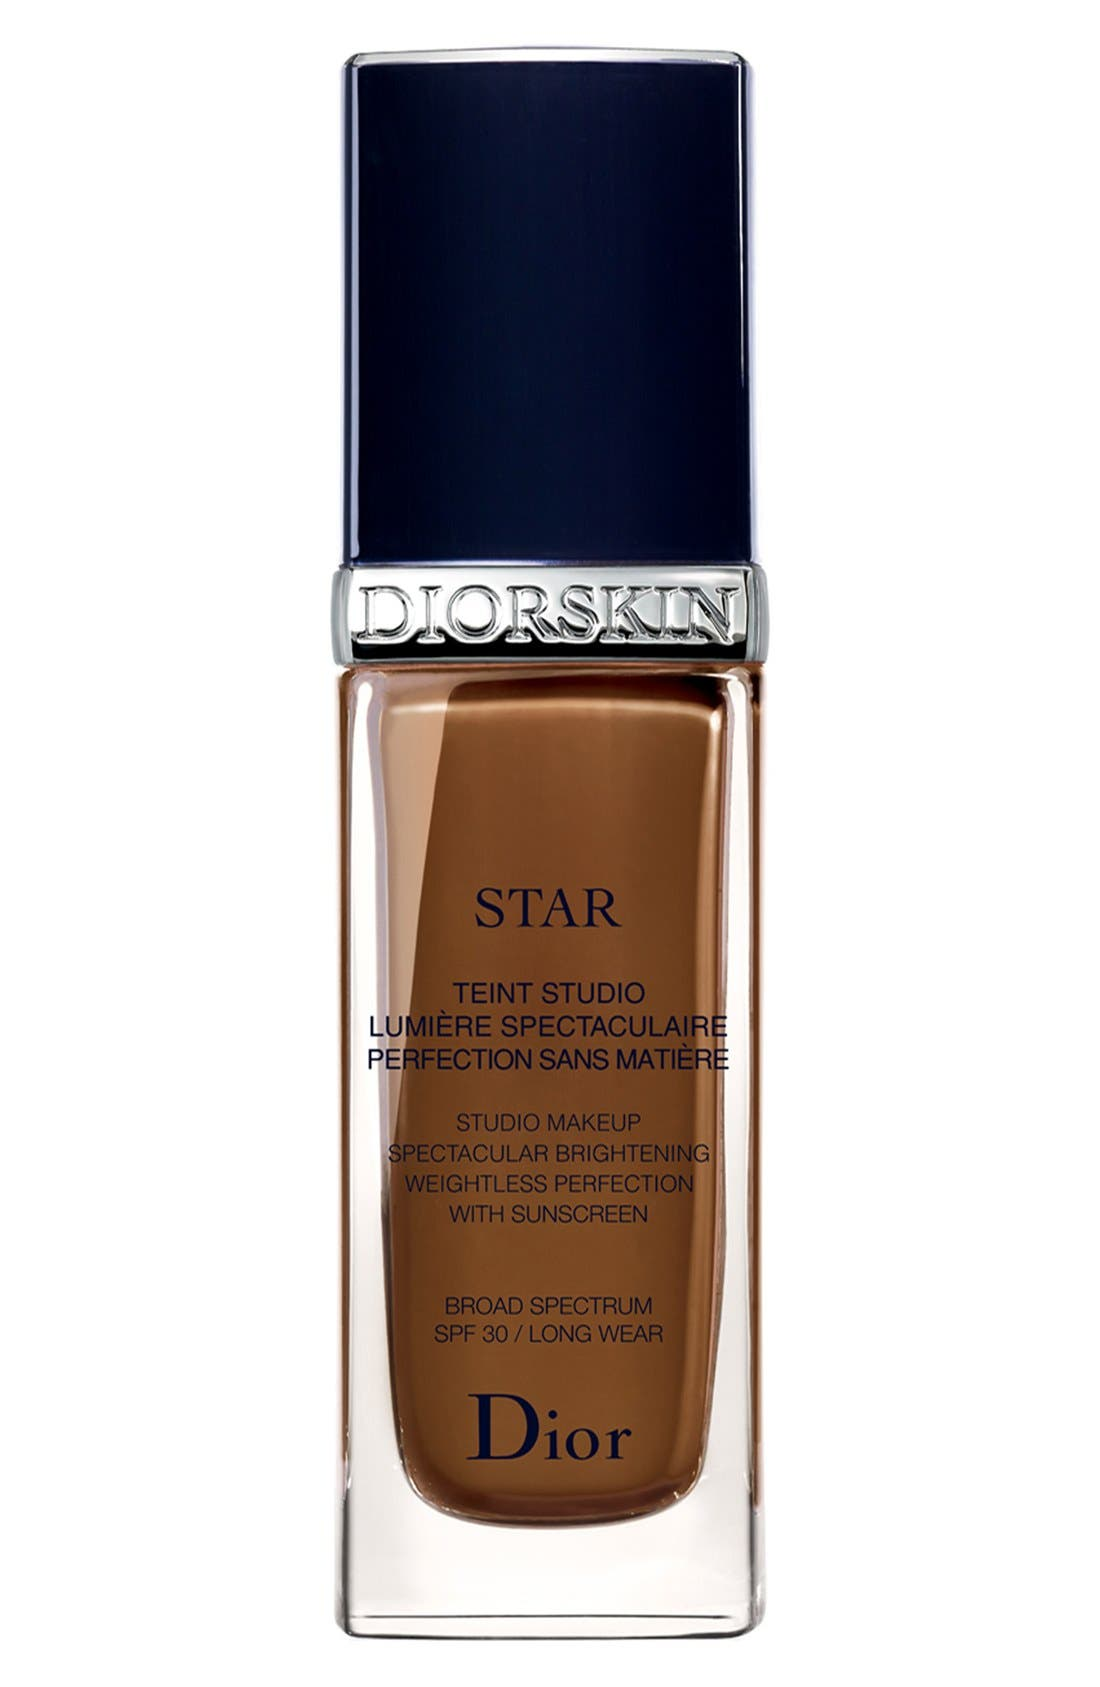 Dior 'Diorskin' Star Studio Foundation